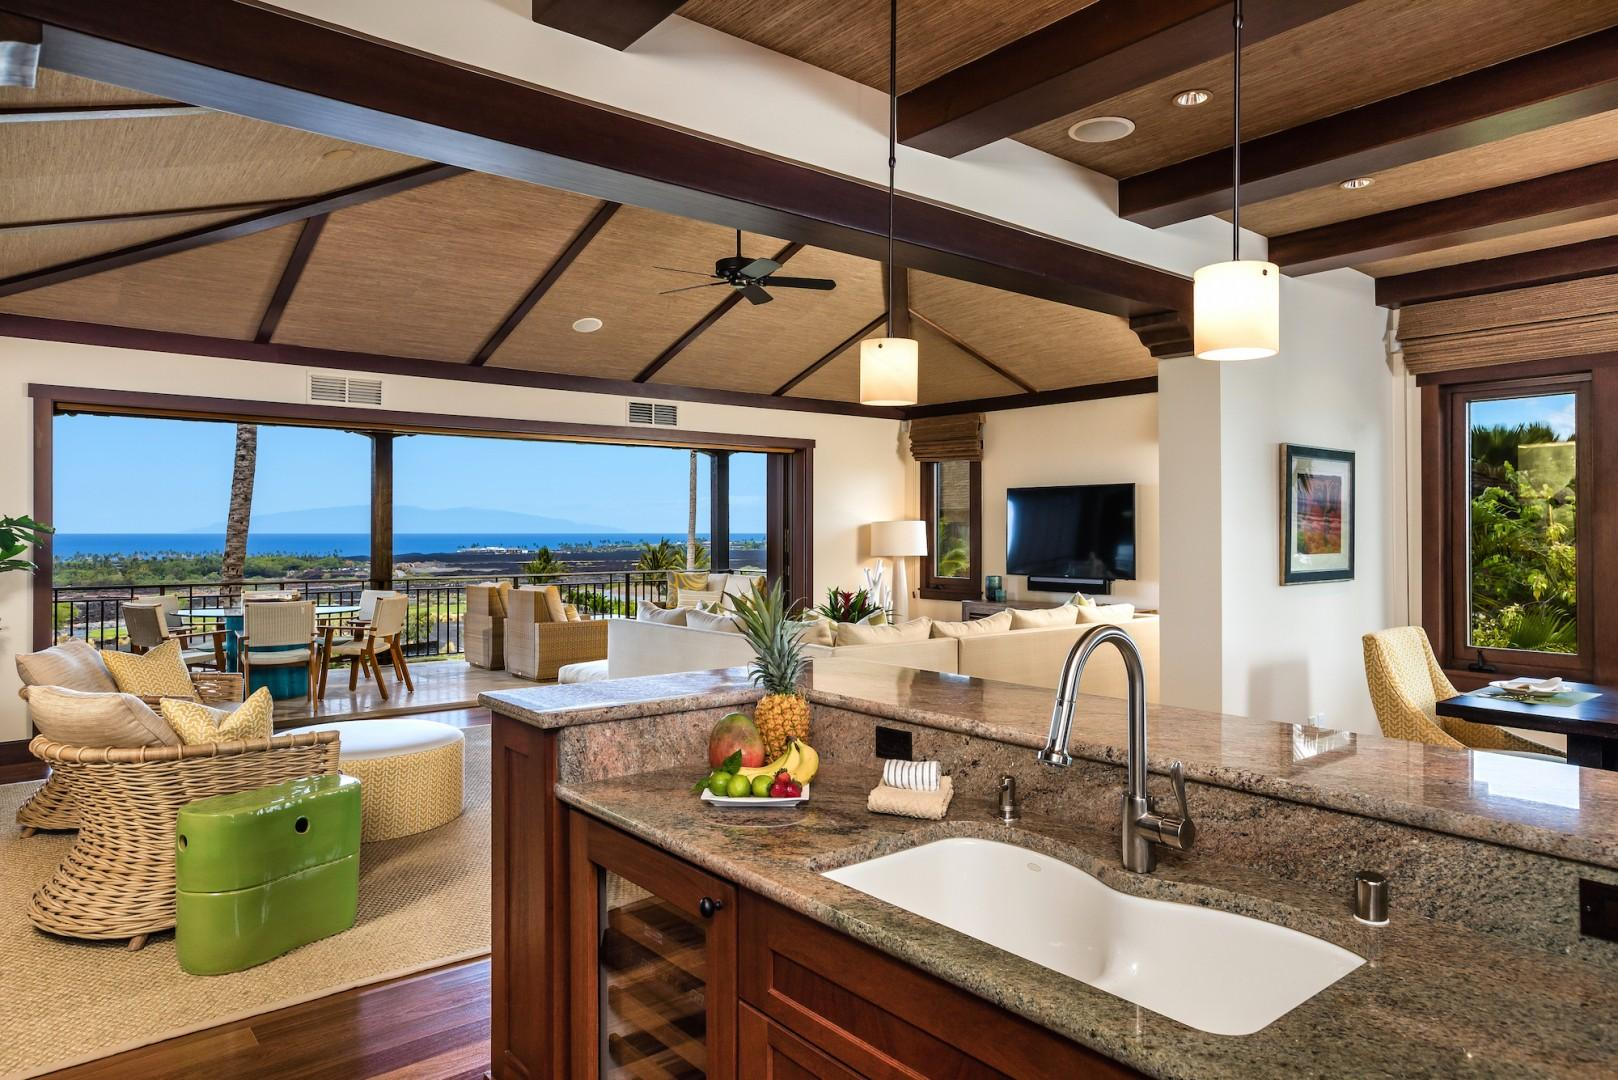 This modern kitchen is a chef's dream. Fully stocked with ocean views.